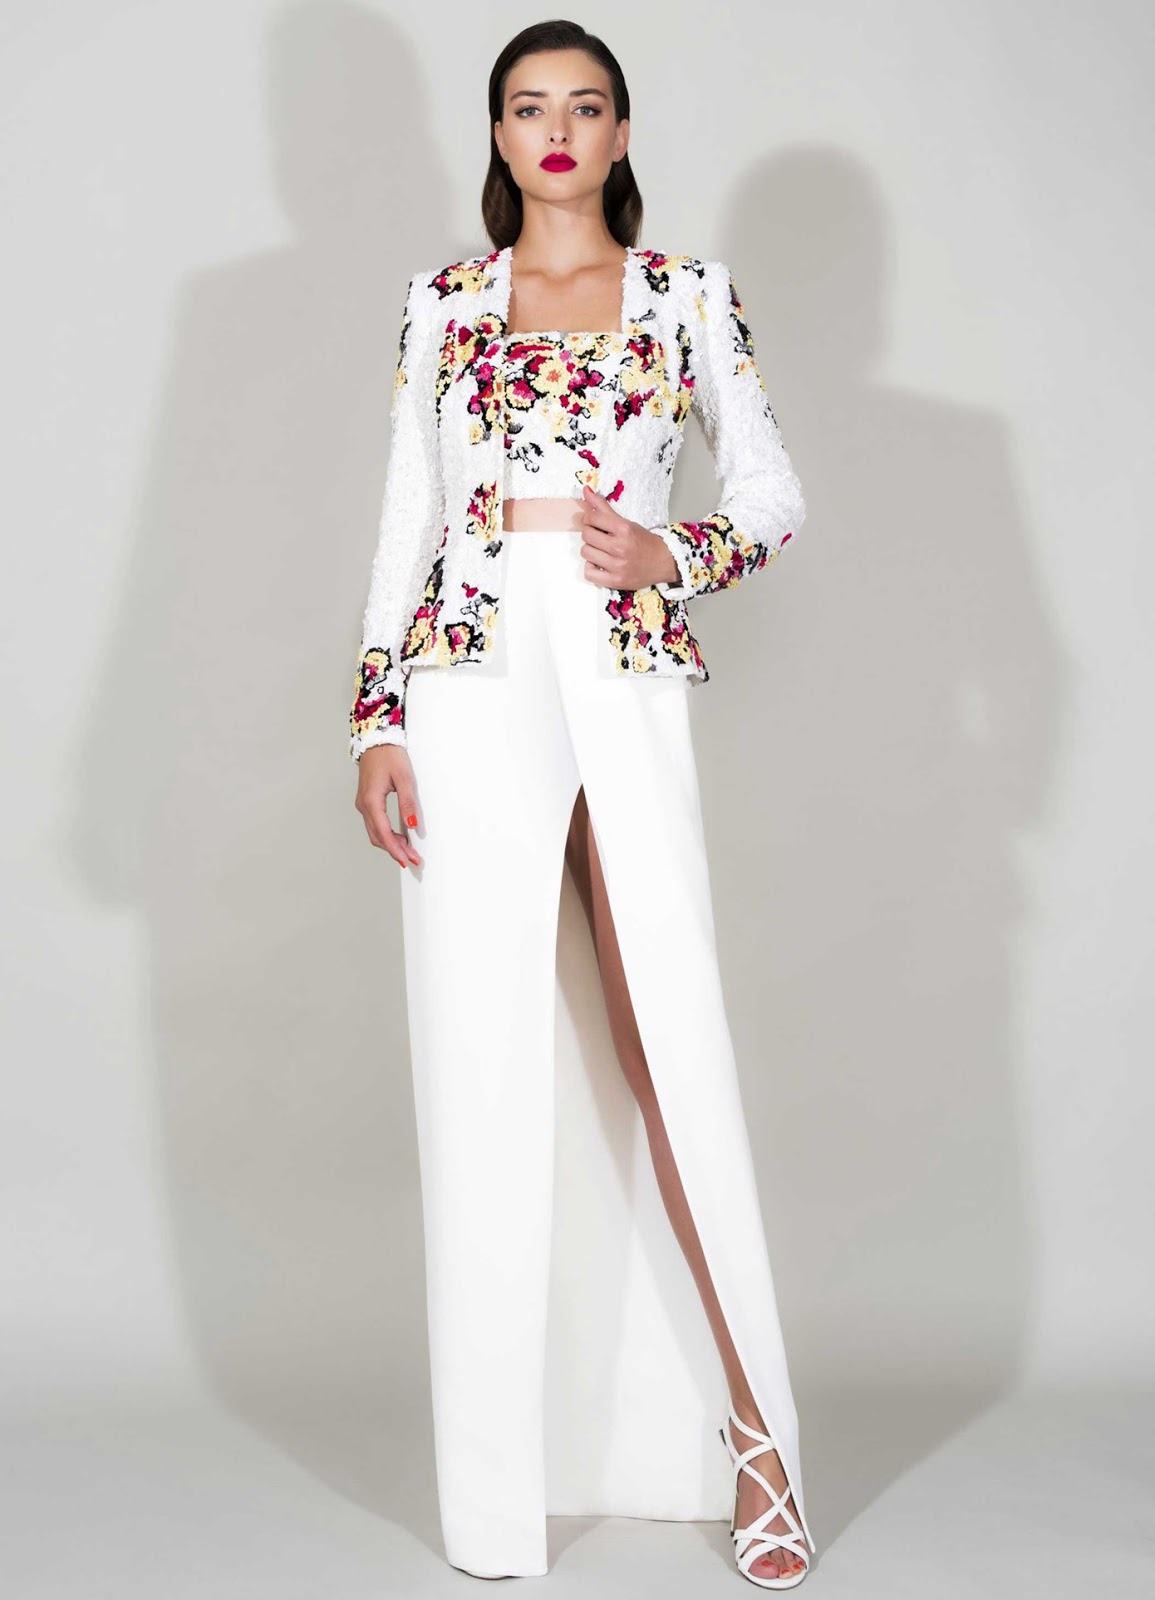 Zuhair Murad Resort Collection 2016 Born In Beirut Ready To Wear Spring Summer